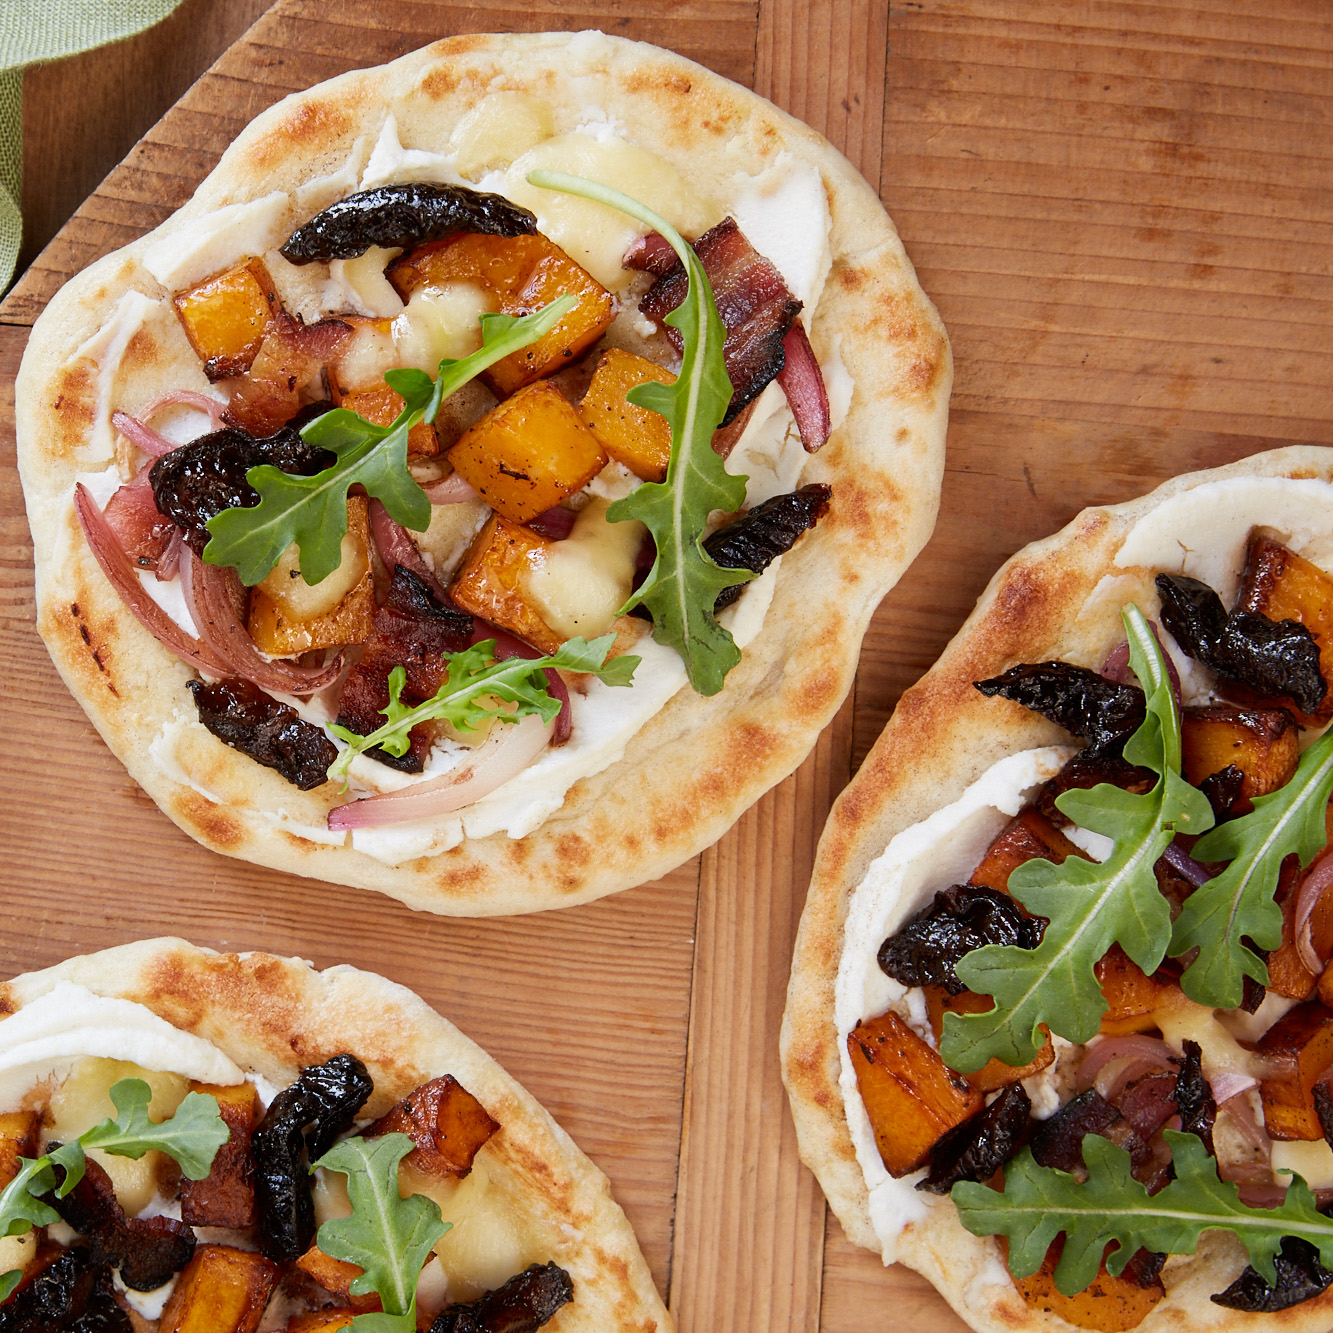 <p>Roasted butternut squash, ricotta, and bacon makes memorable mini pizzas. Topping the baked dough with arugula and prunes gives this flatbread a bright finish.</p>